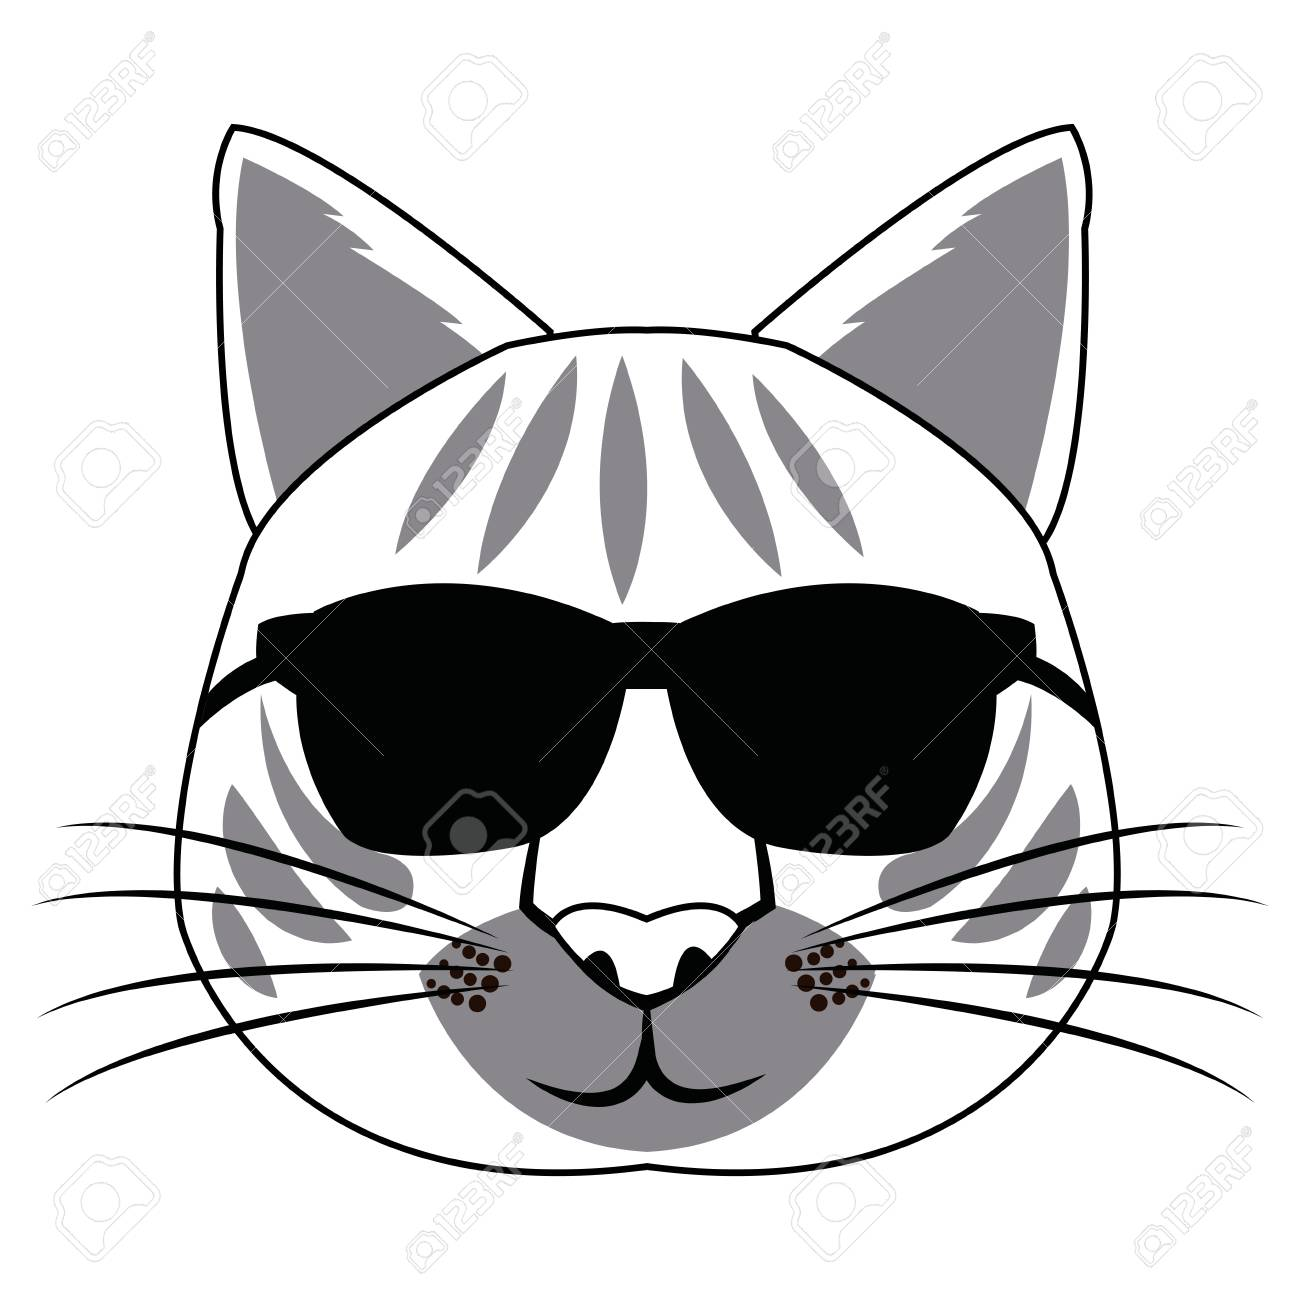 e4a354d16f05 Hand drawn portrait of Cat with glasses and bow tie. Vector isolated  elements. Stock